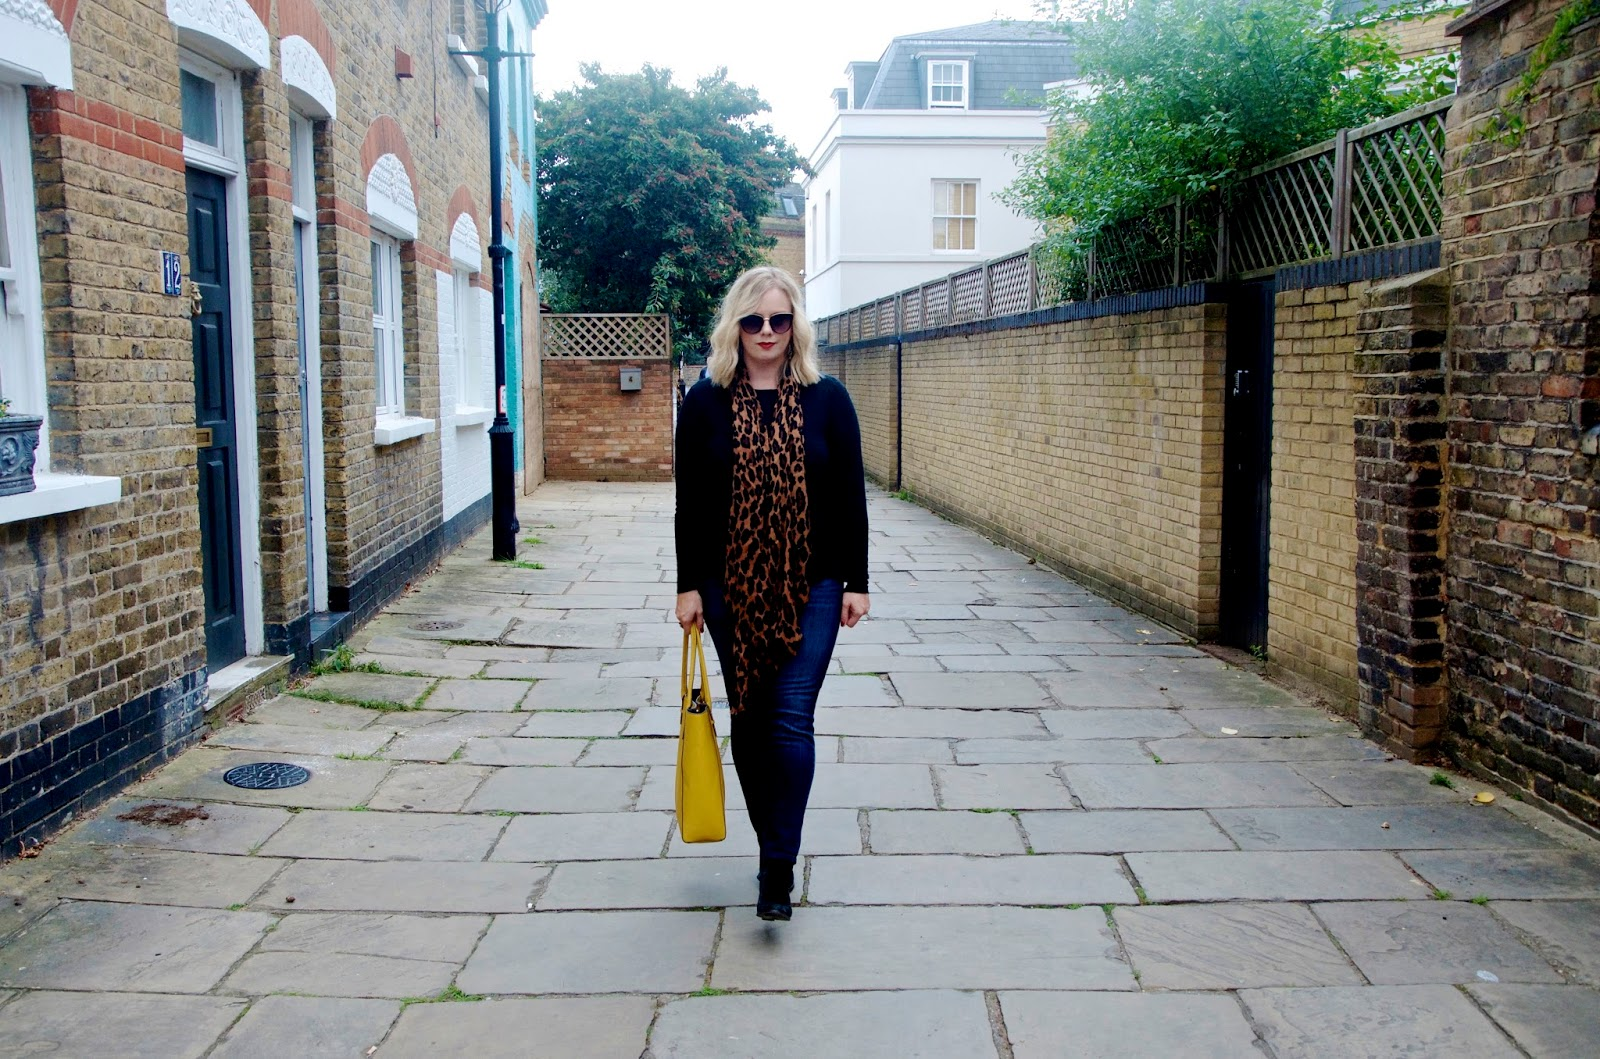 Walking through Putney in London on Quill Lane